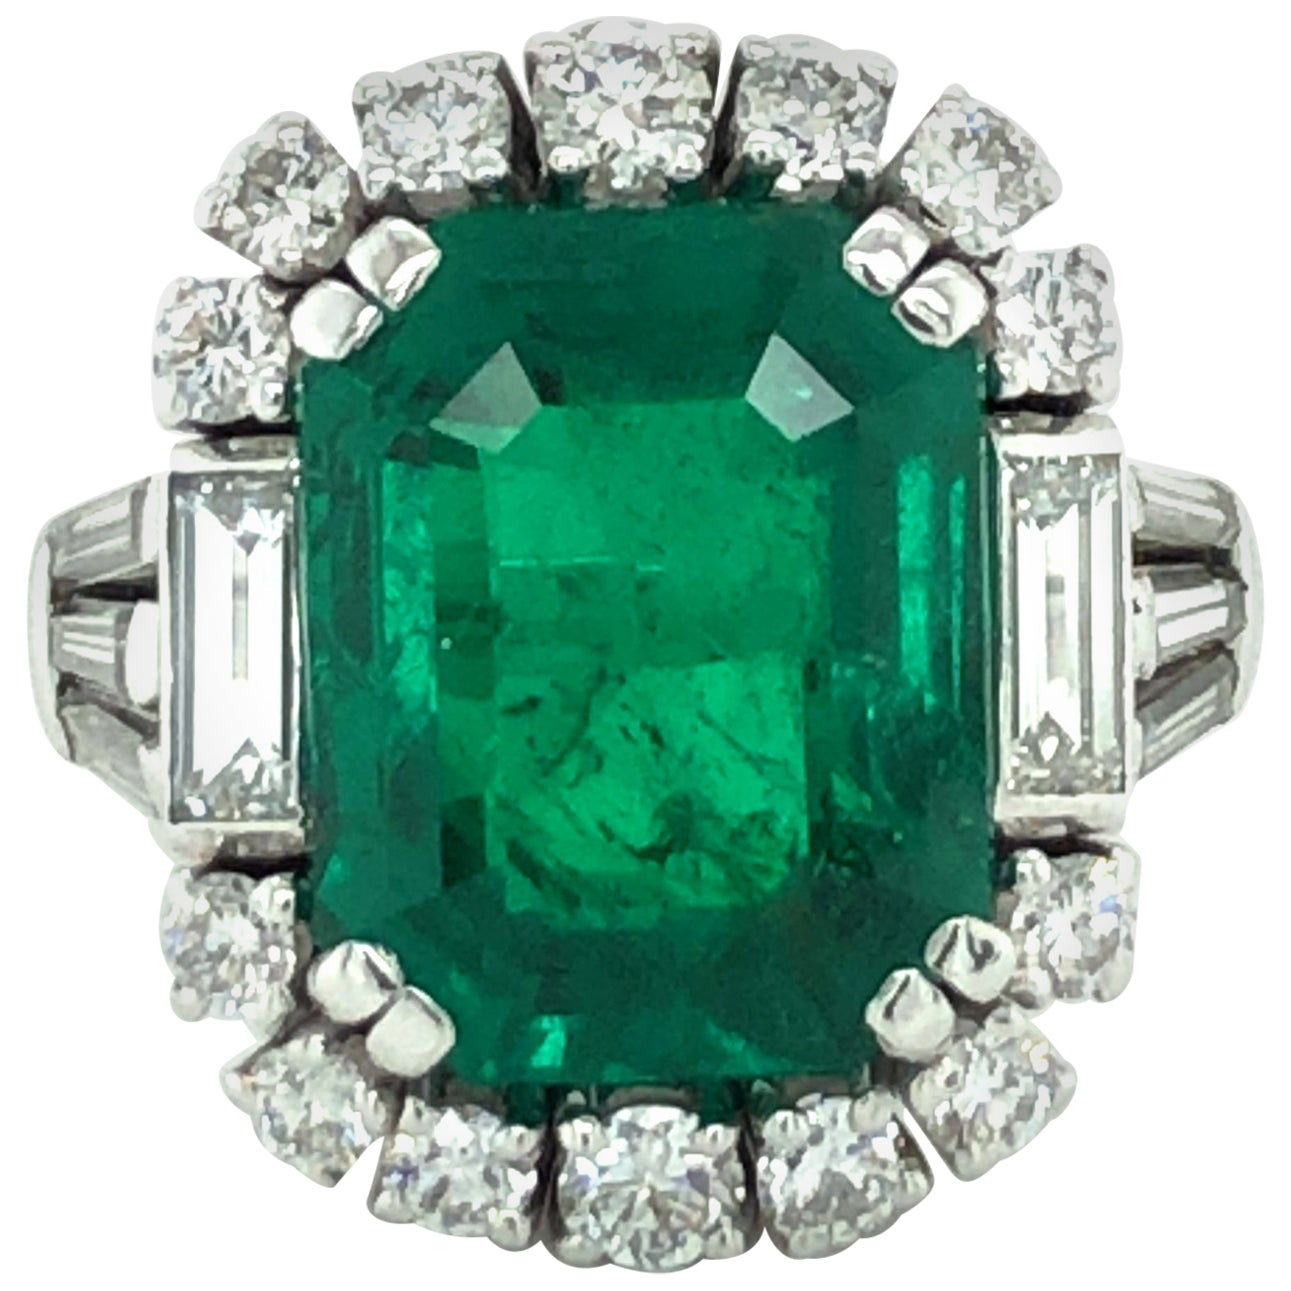 7.03 Carat Colombian Emerald and Diamond Ring in 18 Karat White Gold